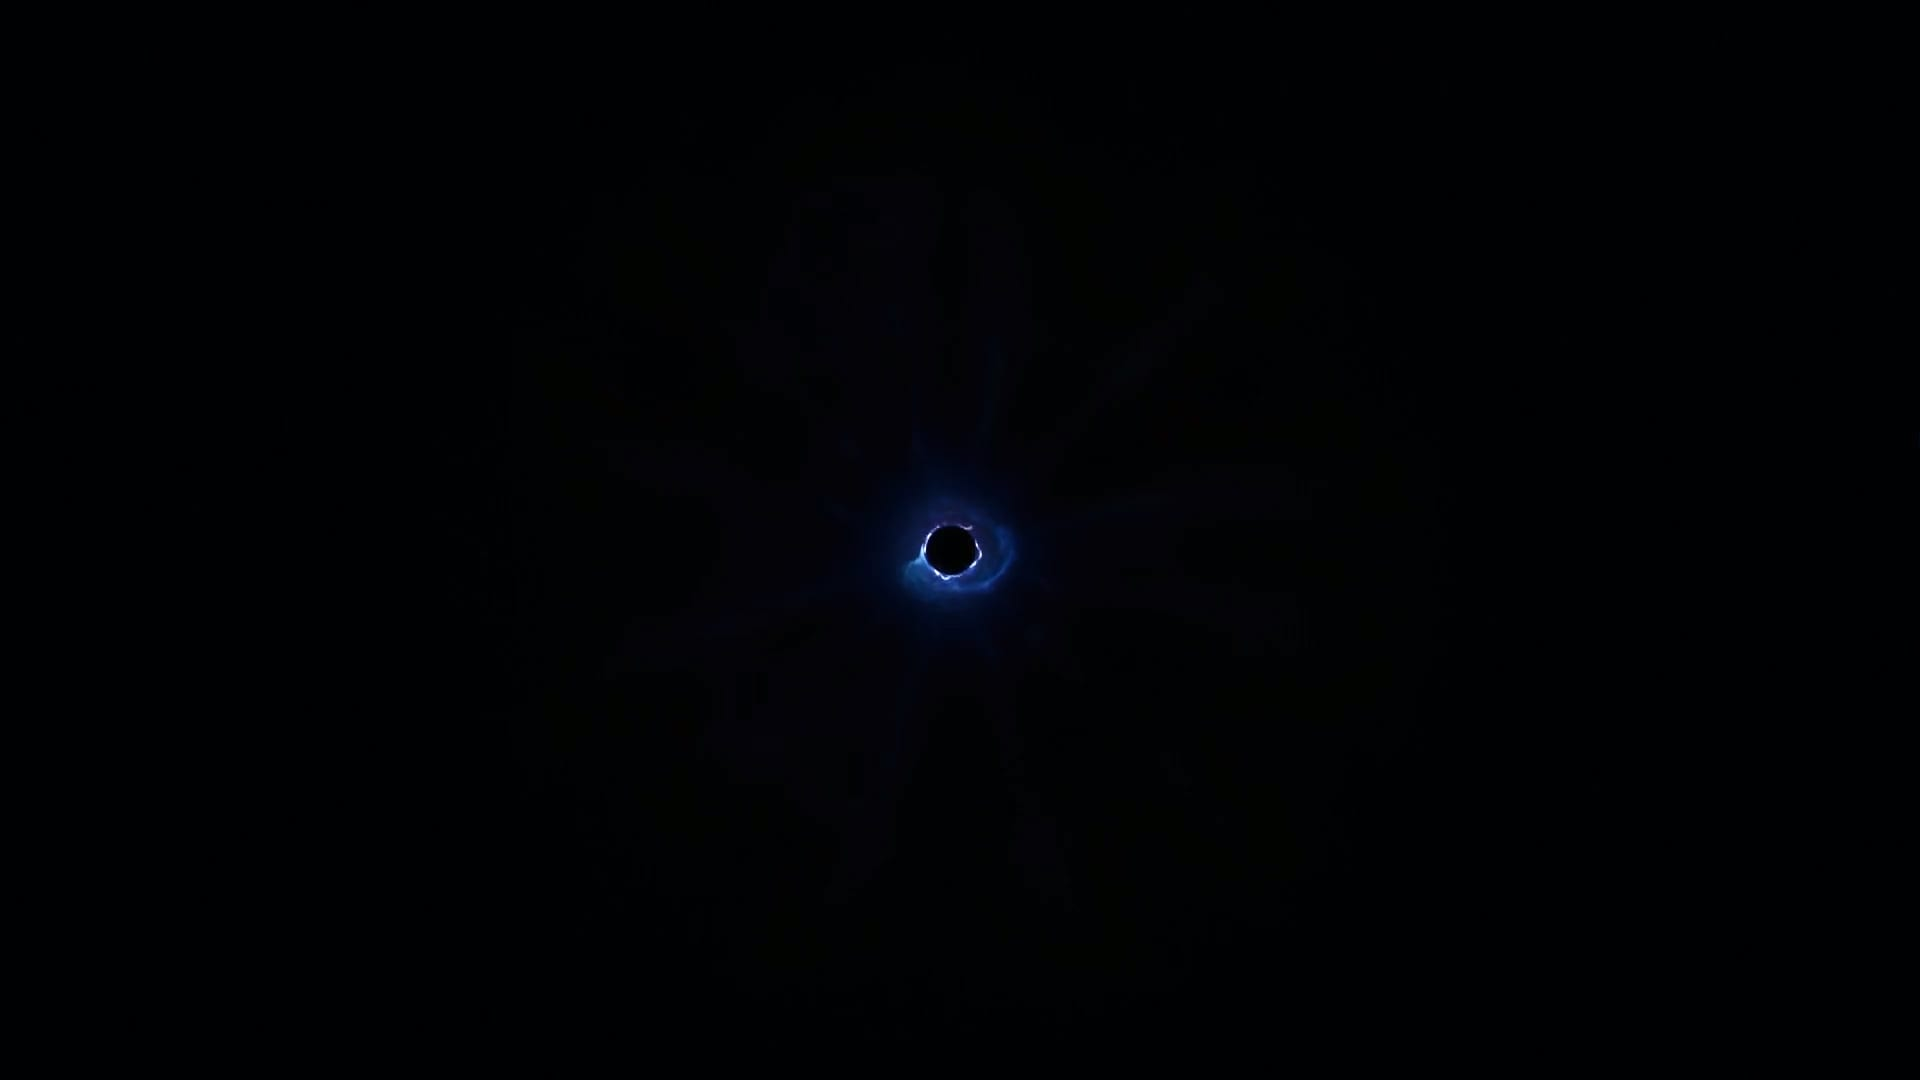 fortnite season 11 darkness black hole